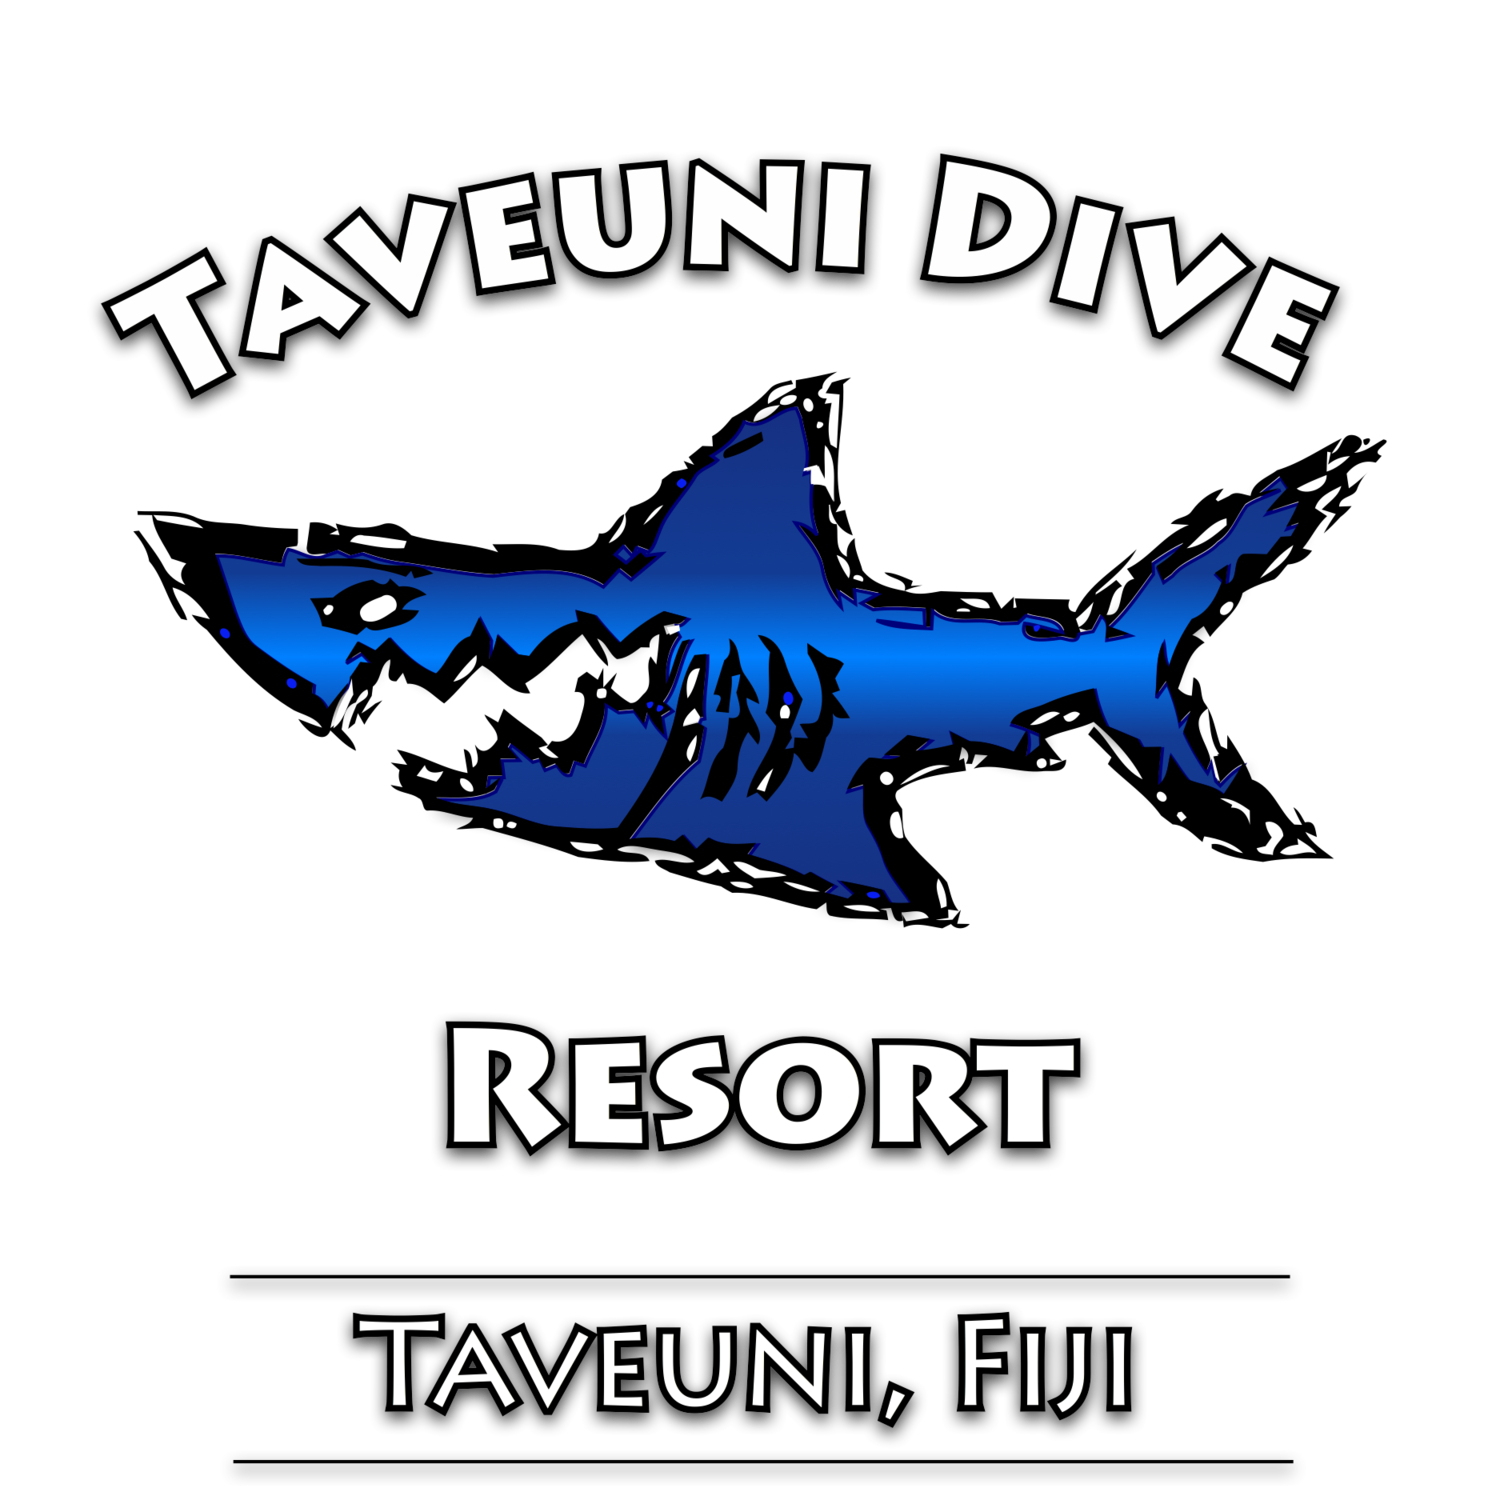 Taveuni Dive Resort